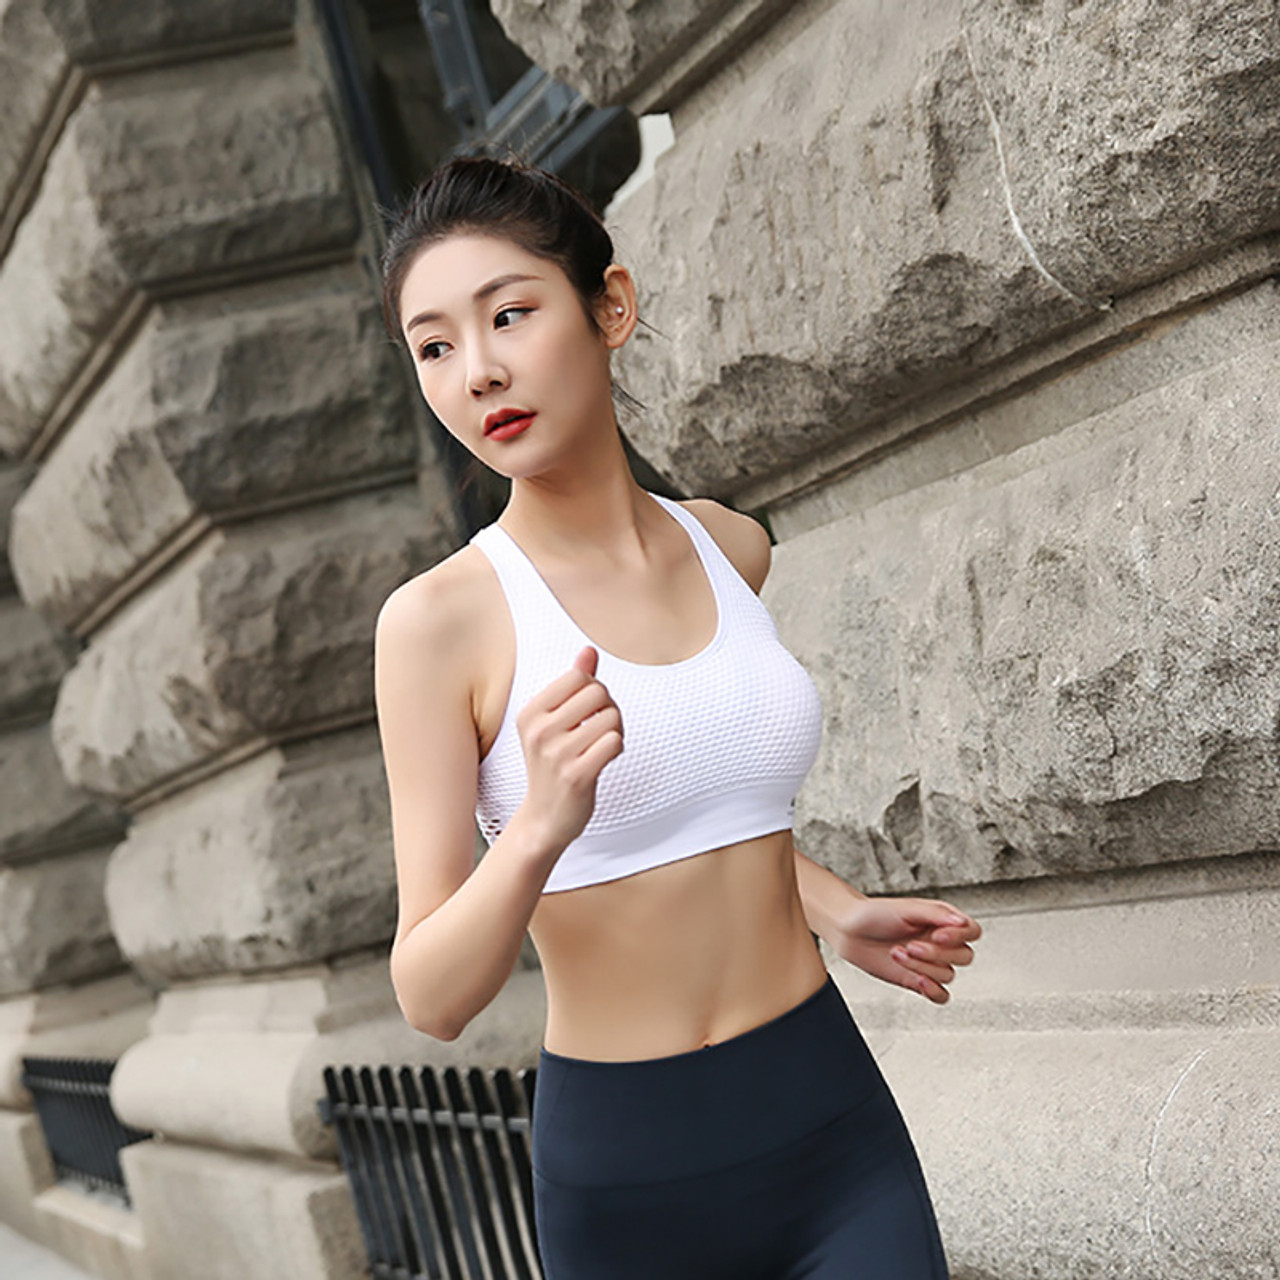 716b37cd504 ... Lucylizz 2018 Mesh Hollow Out Breathable Yoga Bras Sports Bra Fitness  Shockproof Running Underwear Gym Push ...